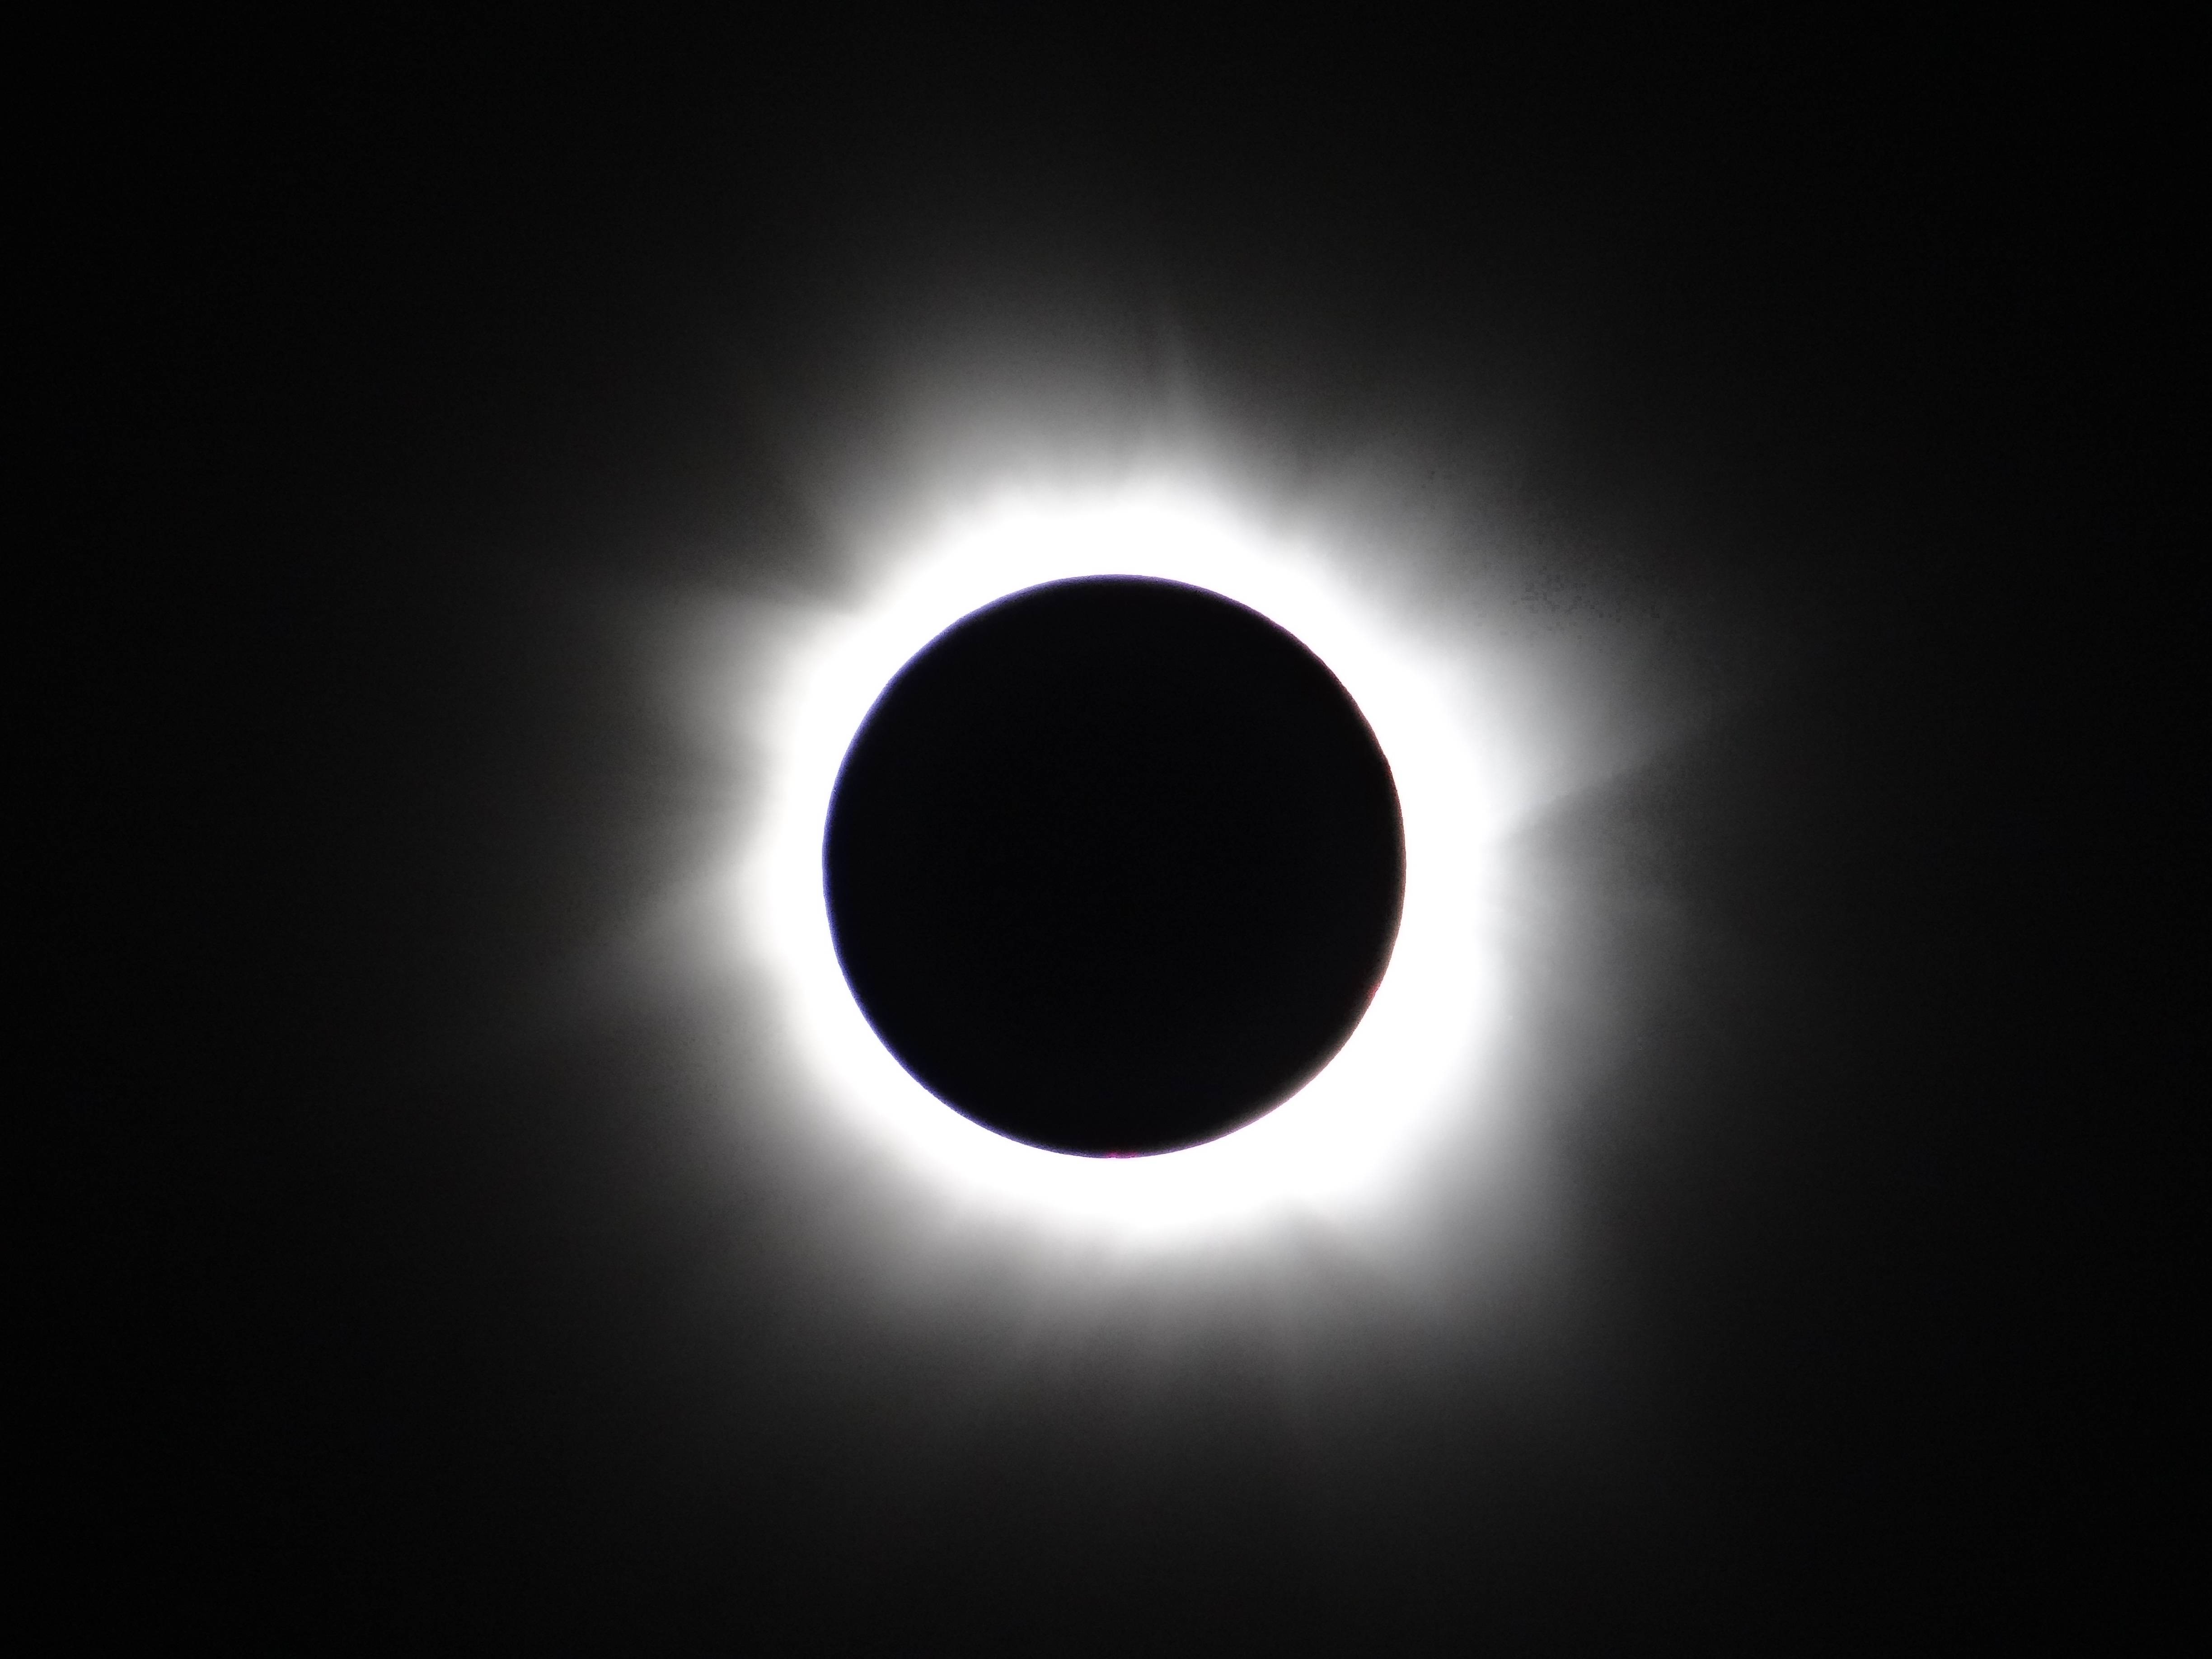 Solar Eclipse Wallpaper for Phones and Tablets